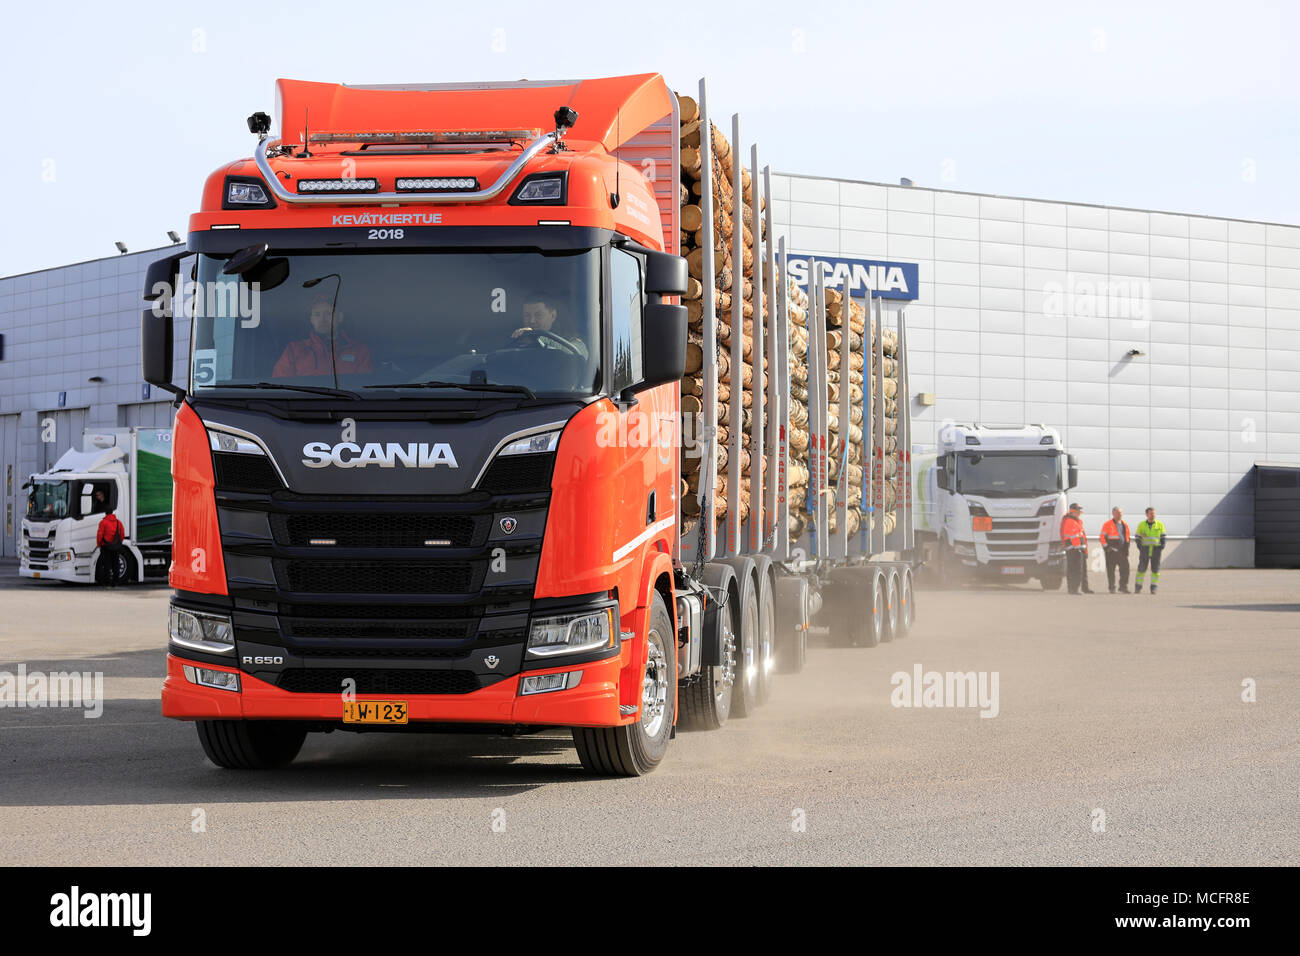 LIETO, FINLAND - APRIL 12, 2018: Orange Scania R650 logging truck at Scania dealer for test drive during Scania Tour 2018 in Turku. - Stock Image